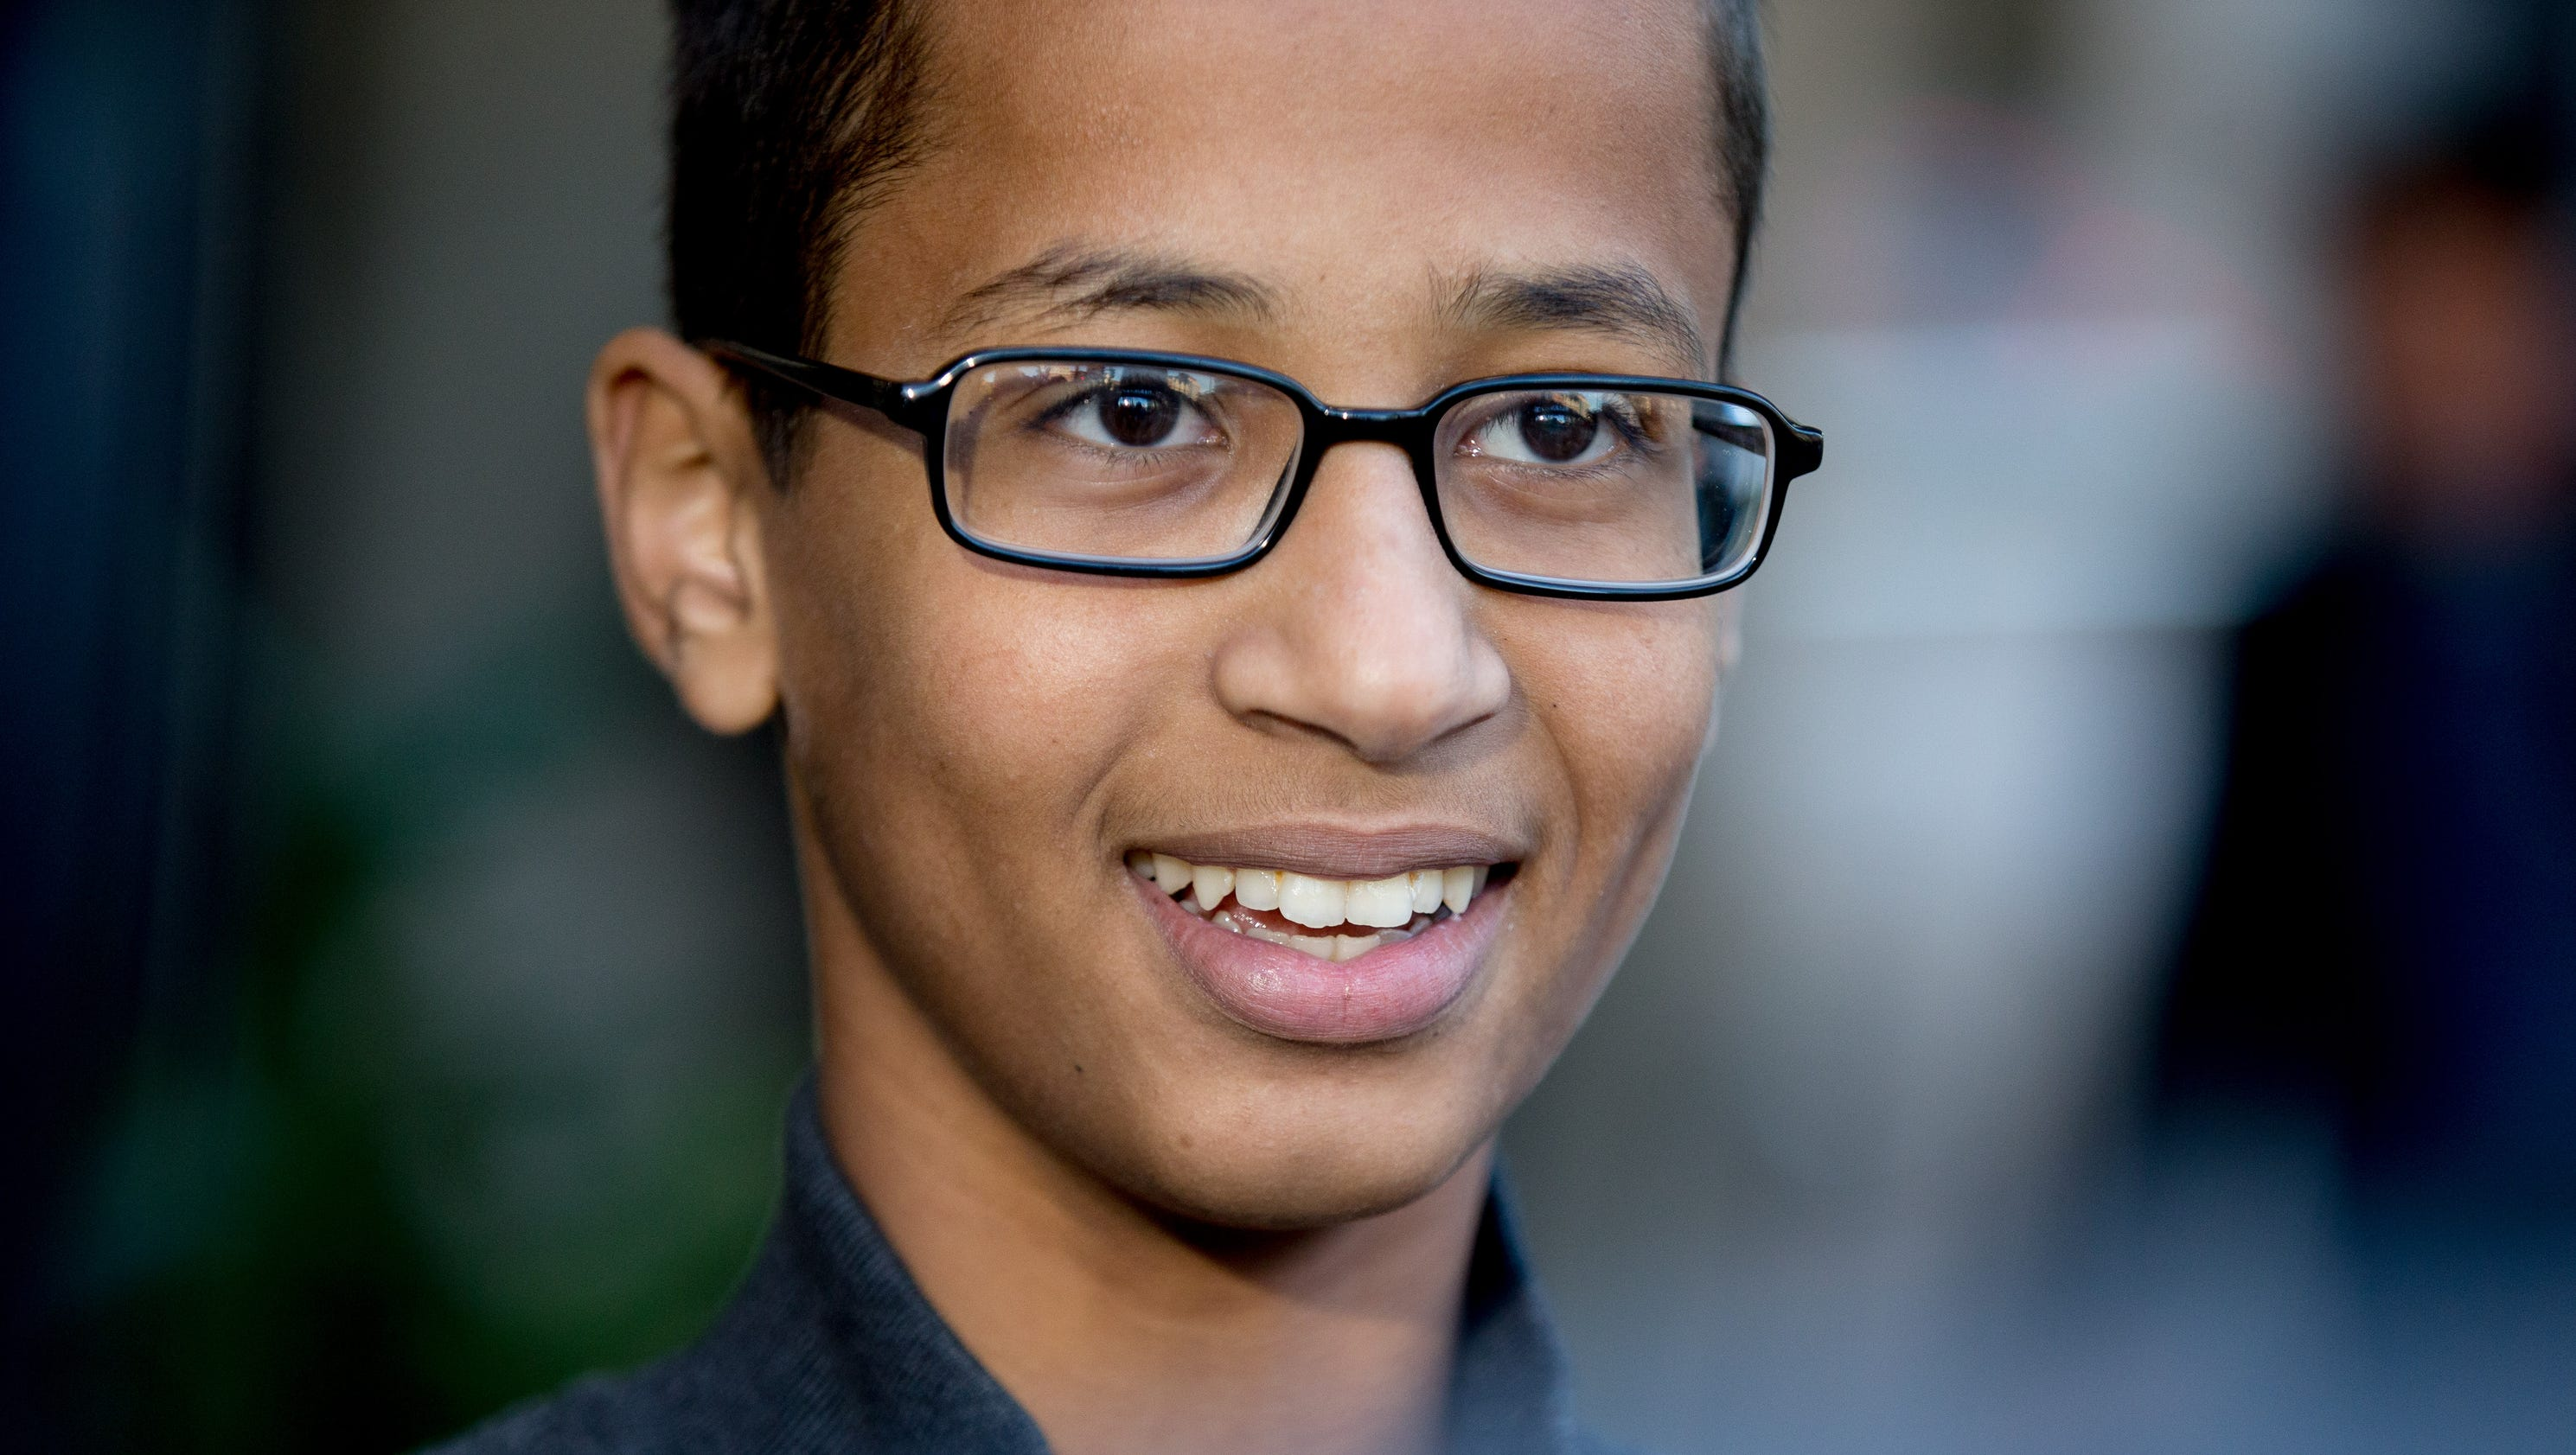 Ahmed Mohamed seeking $15 million in damages